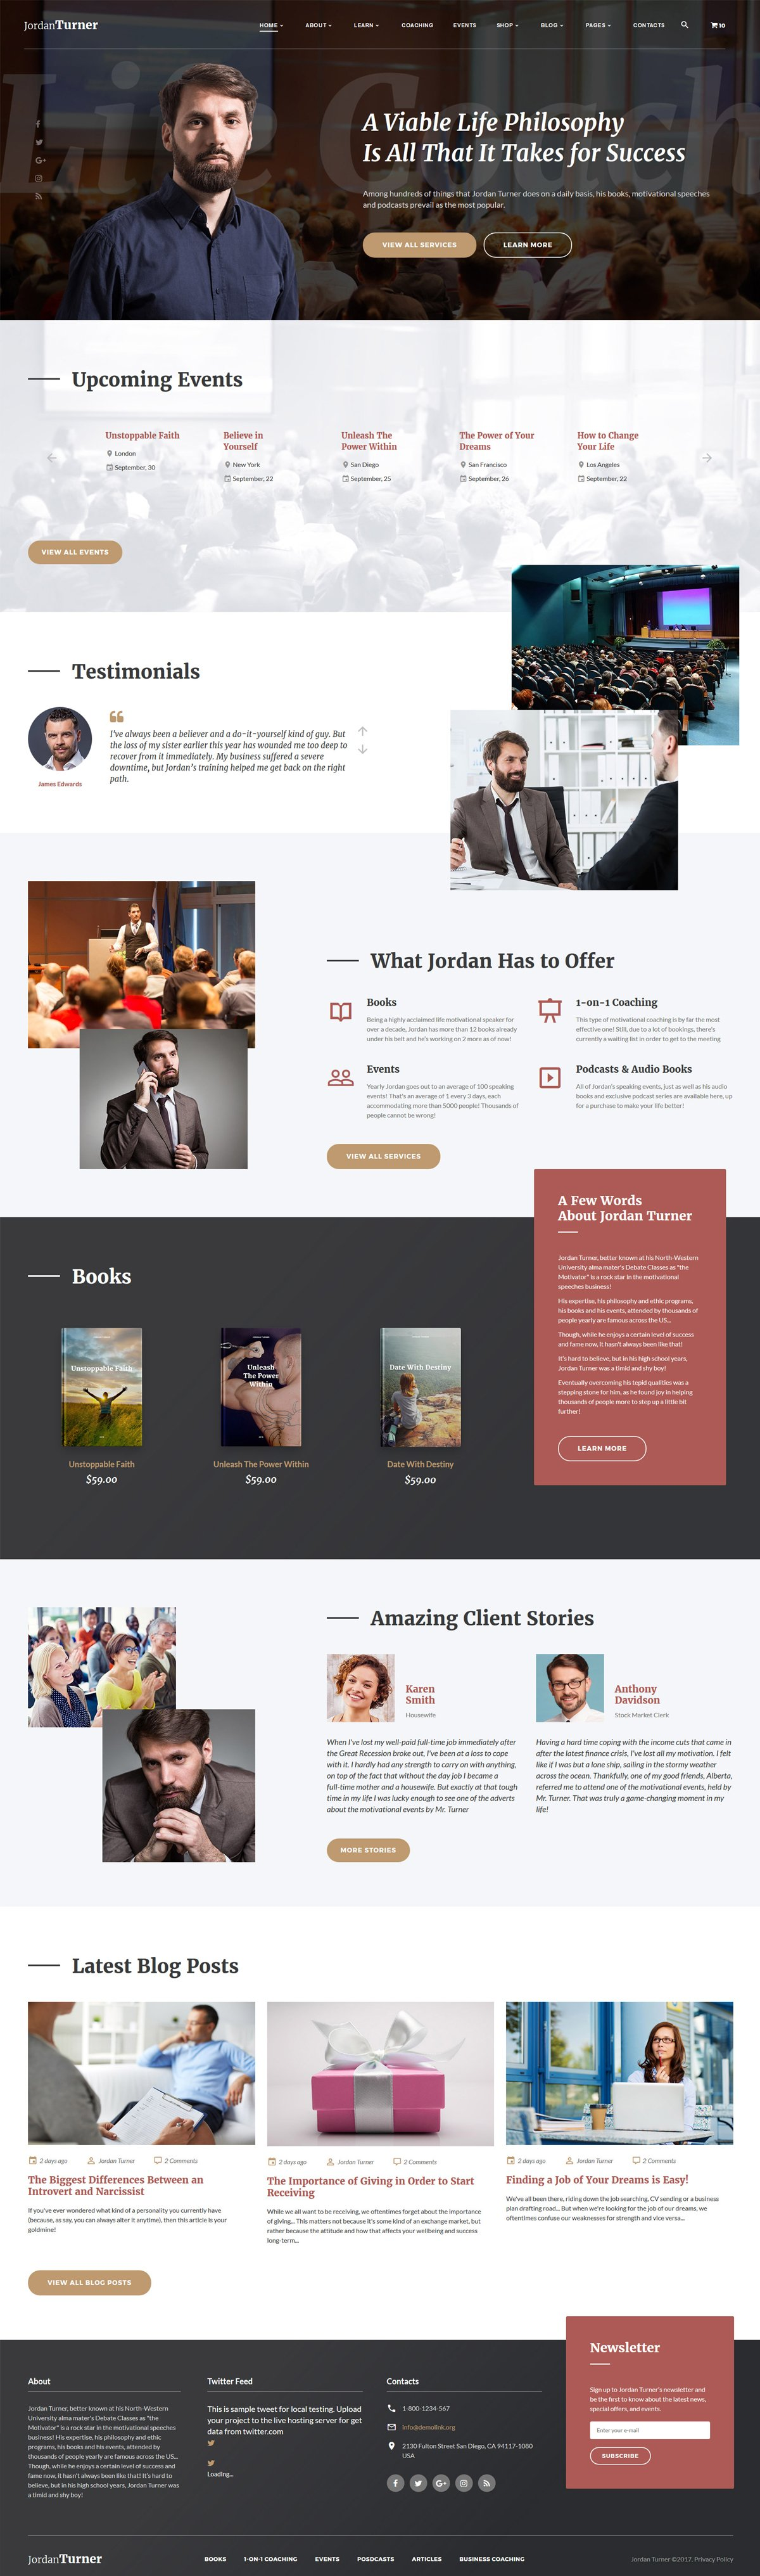 Jordan Turner - Life Coach Website Template - screenshot